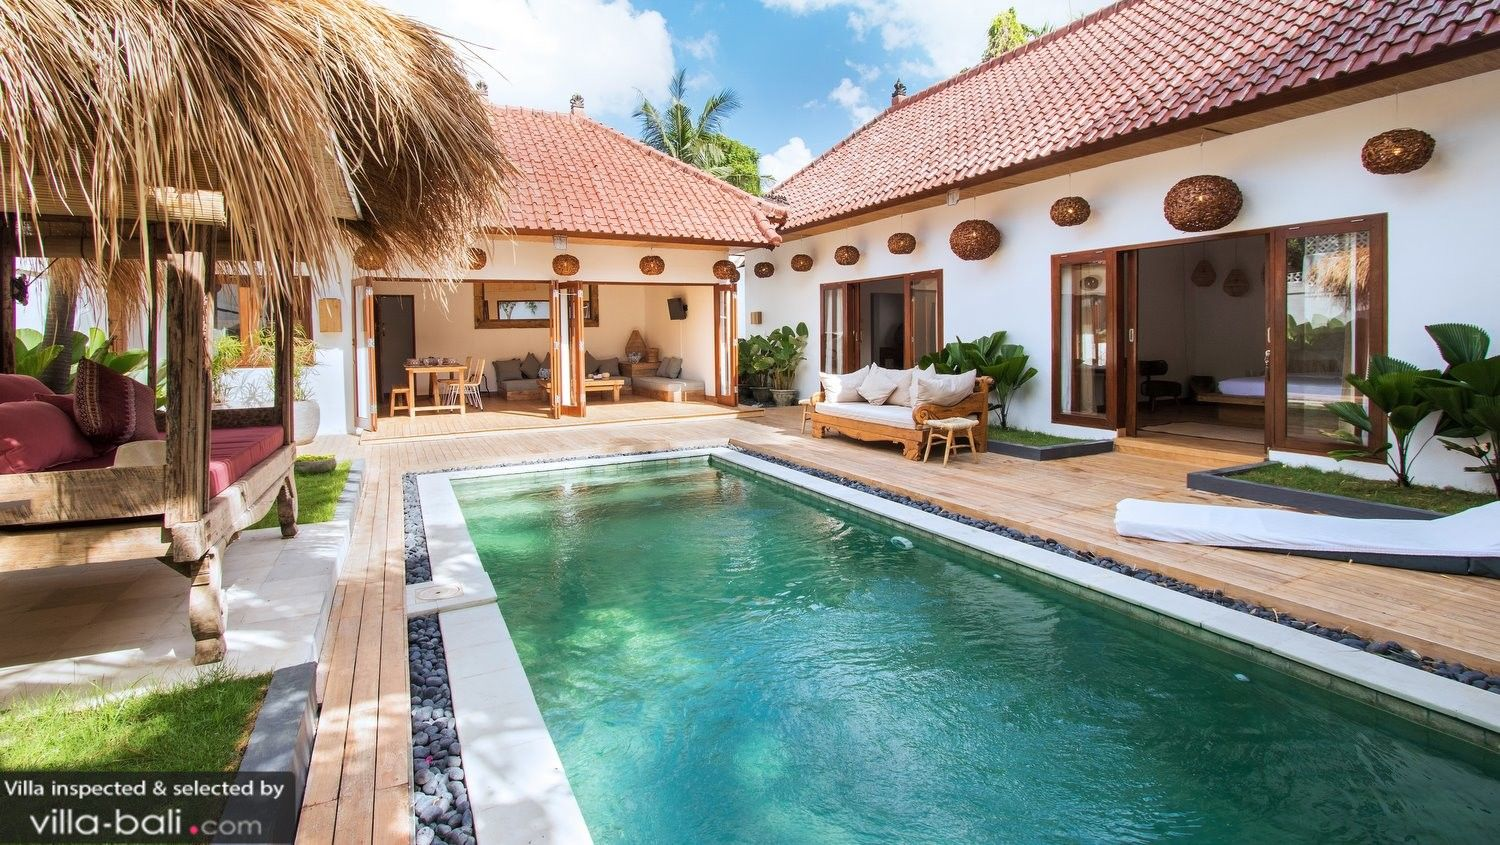 Rent Villa Makasih 2 Bedrooms From Us 245 Night Book Your Private Bali Villa Rental In Seminyak With Our Best Price Bali Style Home Bali House Villa Design